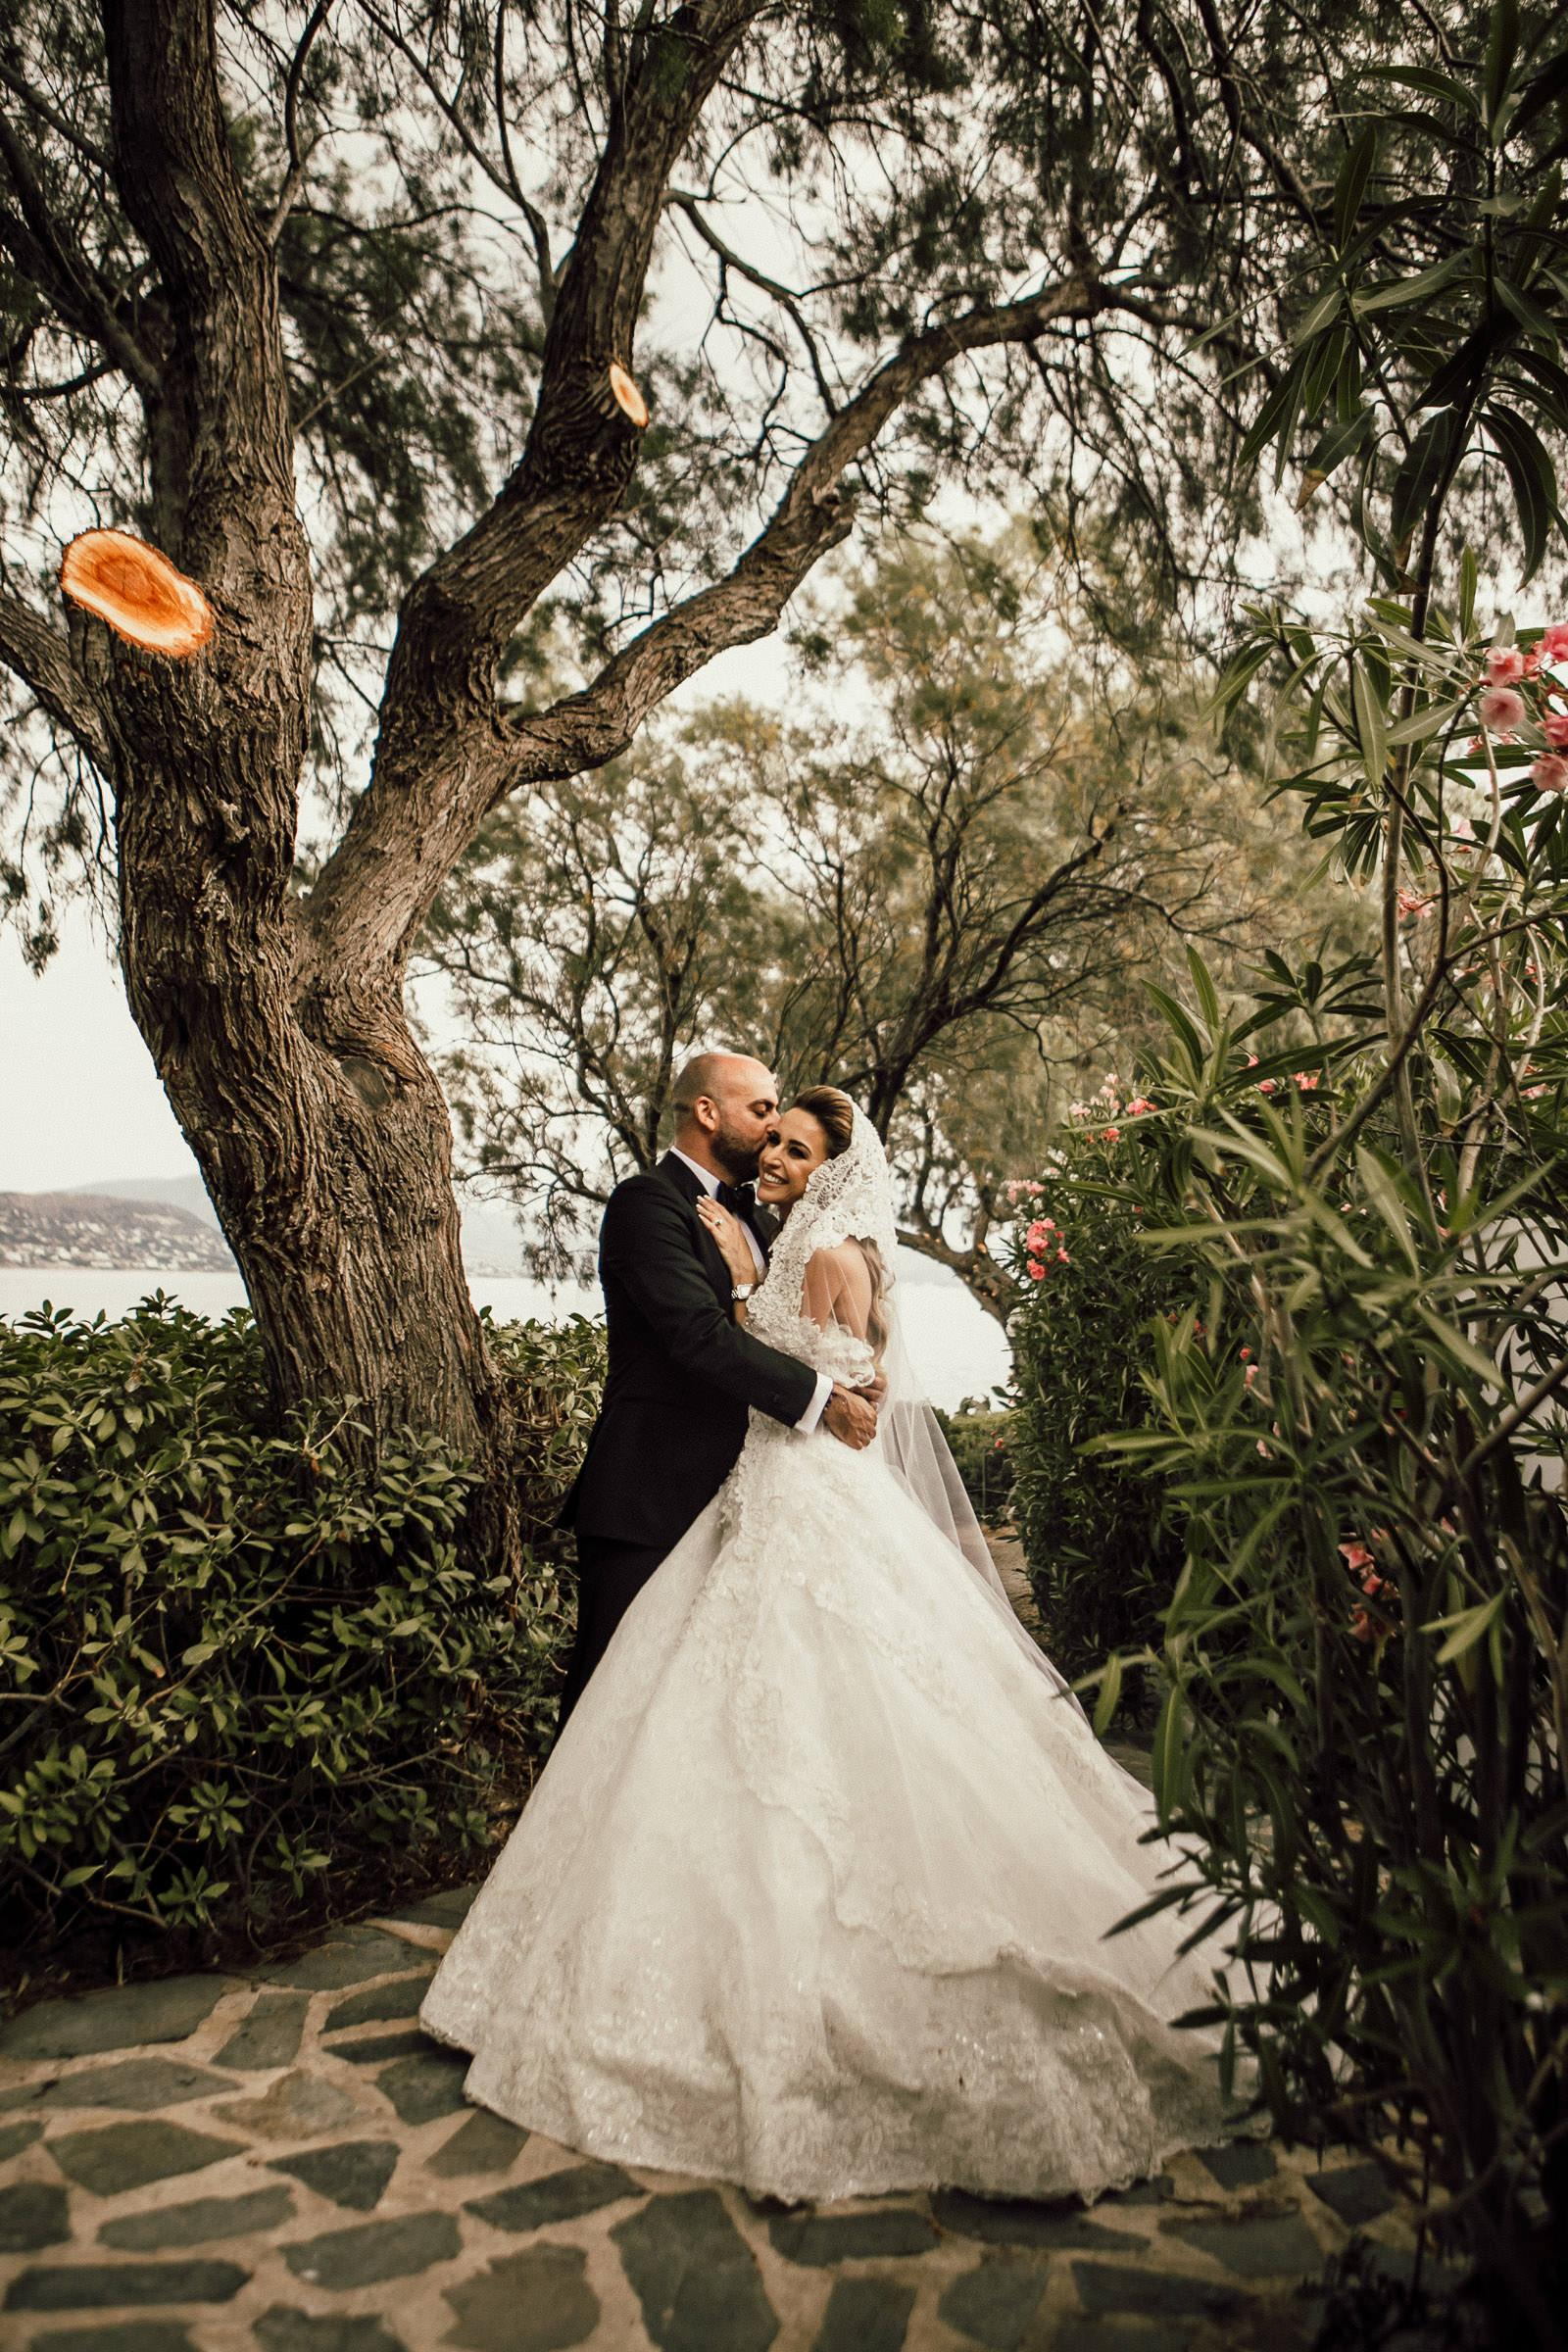 Luxurious destination wedding at Island Athens Riviera in Greece